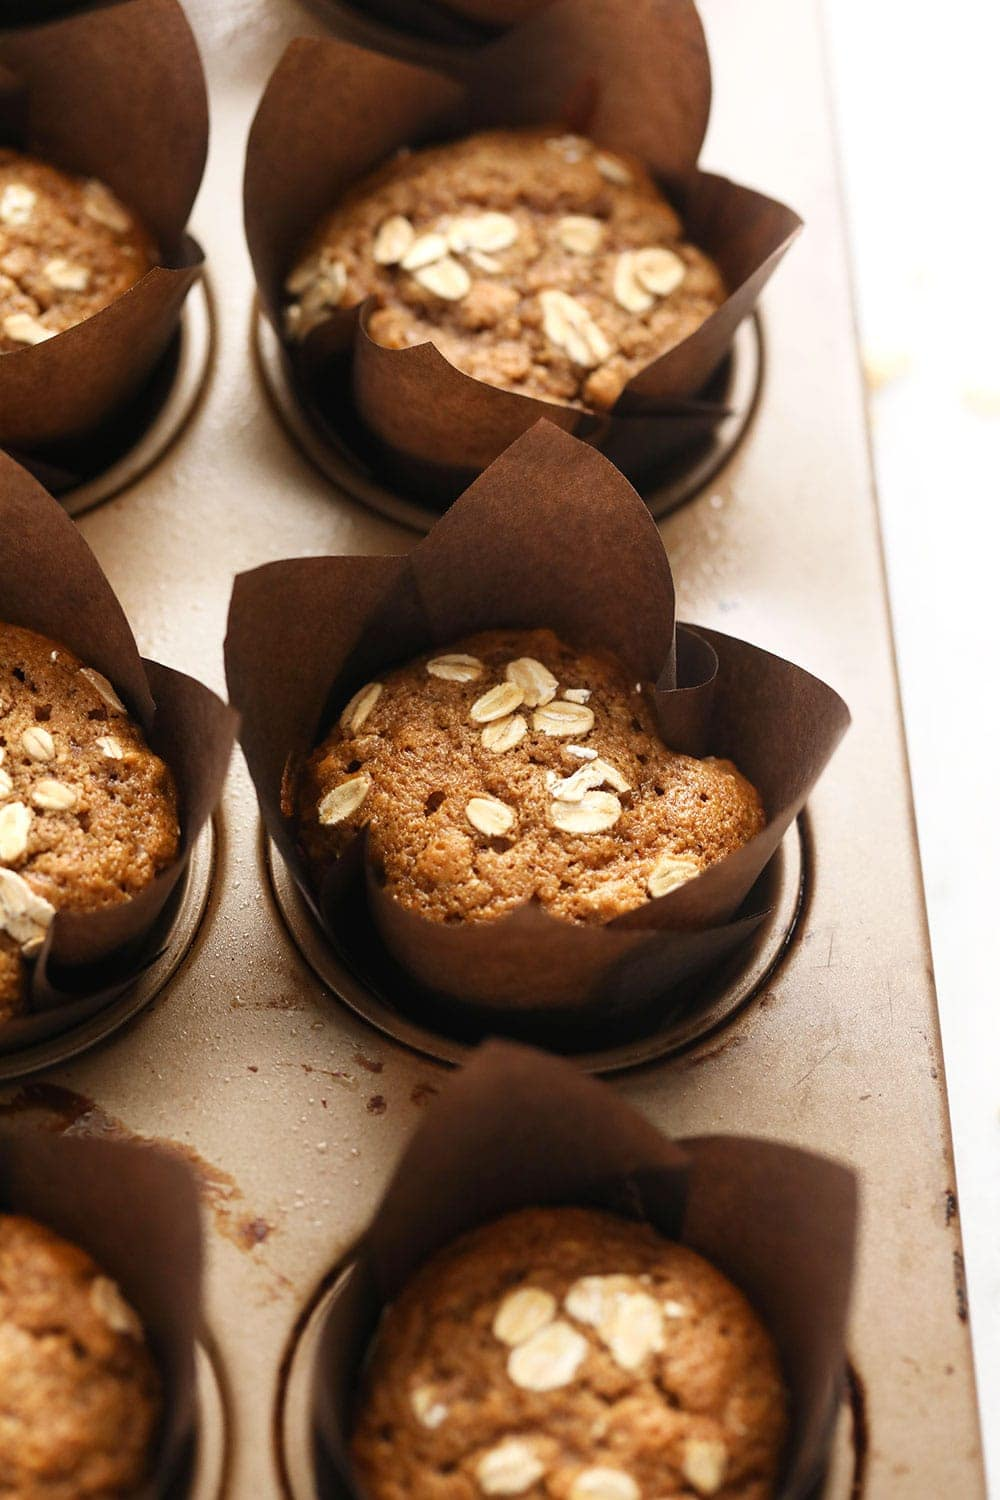 classic oatmeal muffins in a muffin pan after baking